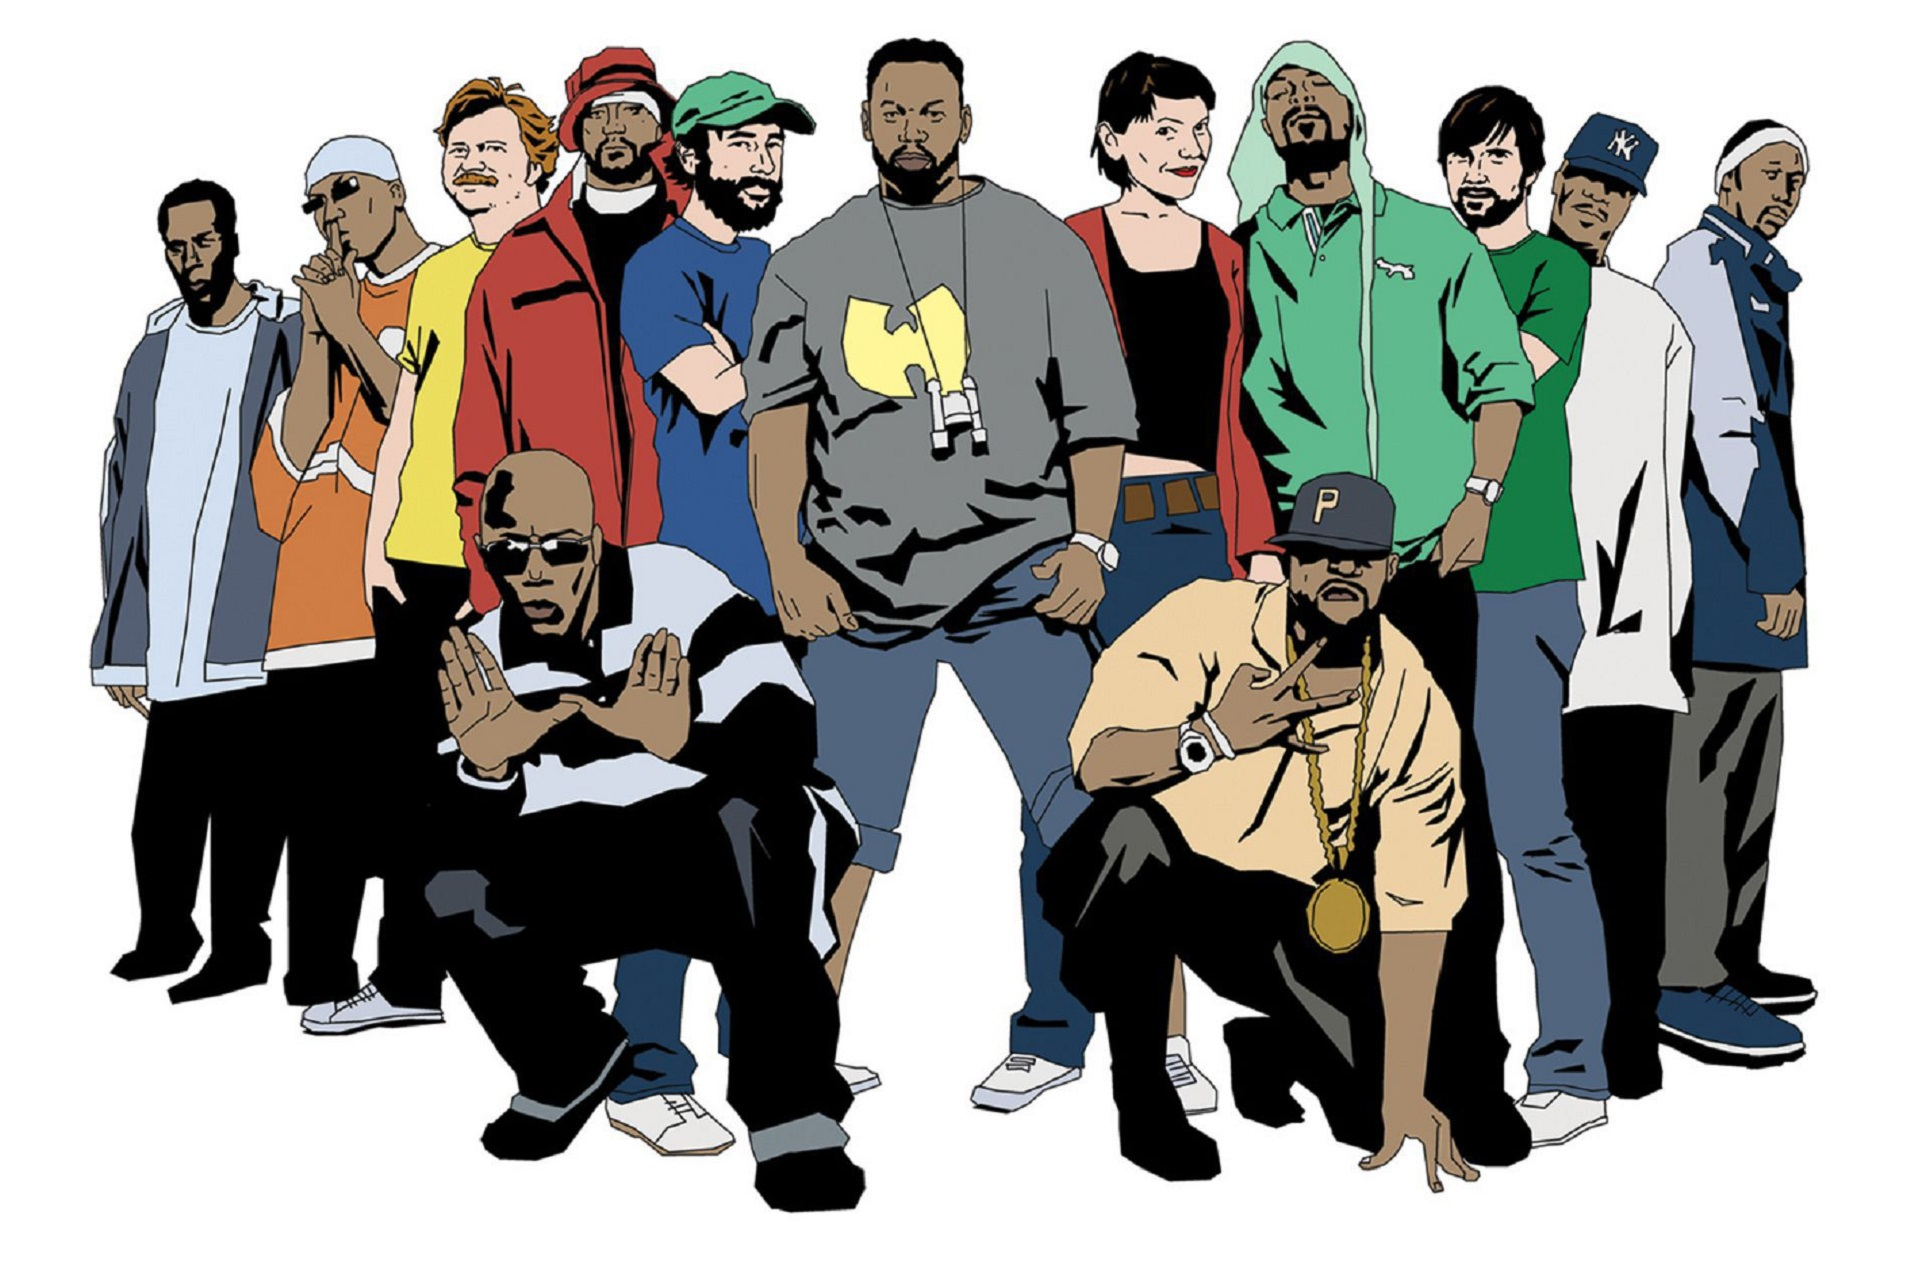 wutang clan wallpapers images photos pictures backgrounds